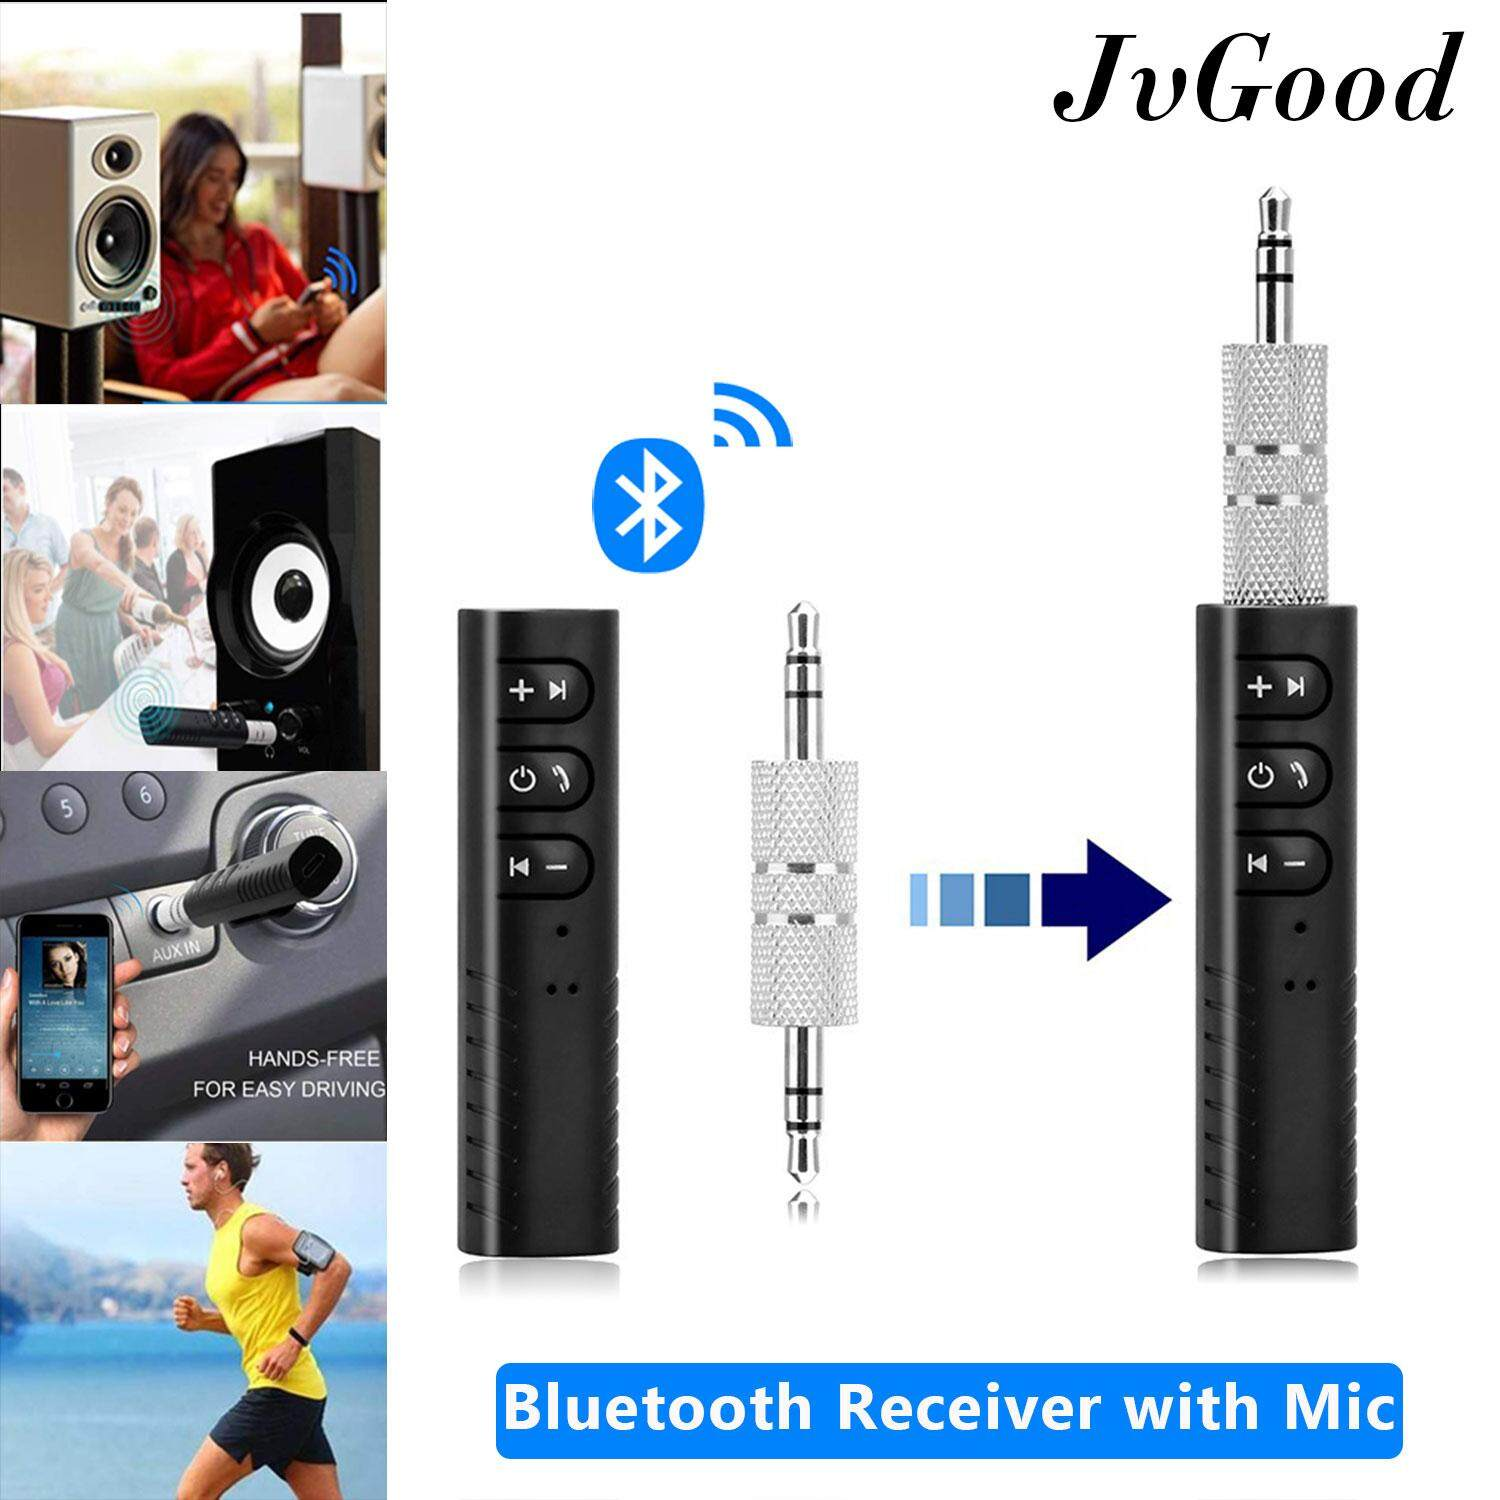 Jvgood Bluetooth Receiver, 3.5mm Aux Bluetooth 4.1 Receiver Audio Music Car Receiver Wireless Handsfree Adapter Dongle Bluetooth Car Speaker, With Microphone For Pc Speakers, Car&home Stereo Sound System And A/v Receivers By Jvgood.